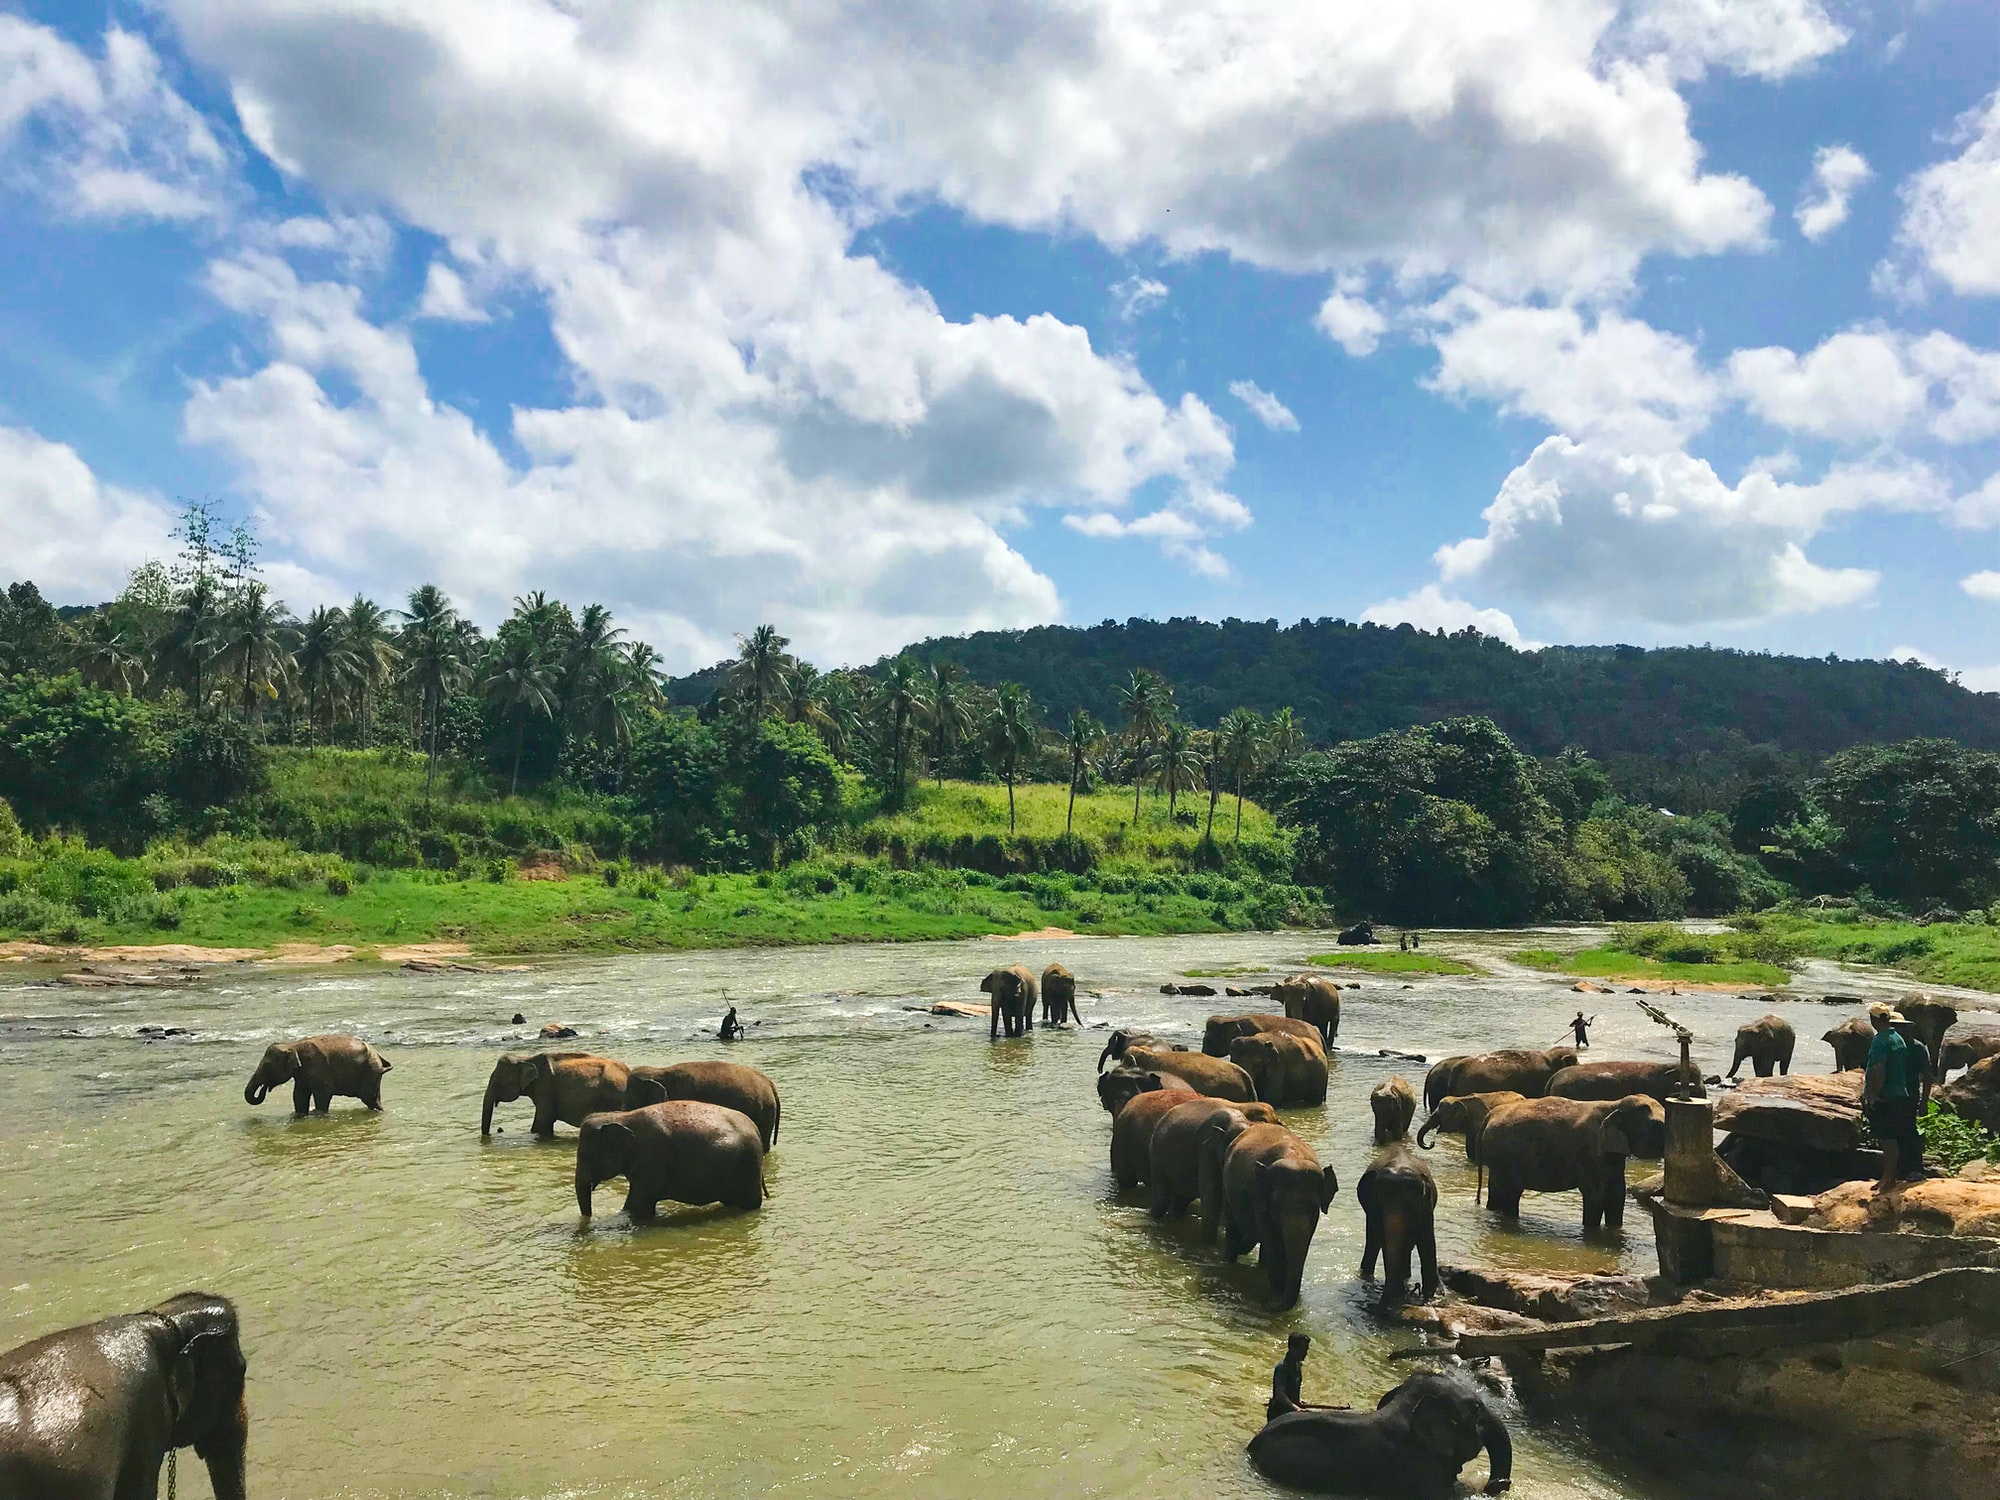 """Pinnawala Elephant Orphanage as the name suggests is home to almost 100 elephants. Around two every afternoon the elephants are brought to the river """"Ma Oya"""" for a bath. It is quite a sight to see all these beautiful animals frolicking in the river. The photo was taken in July 2018 on our latest trip to Sri Lanka. If you love elephants and want to experience them up close, visit Sri Lanka."""